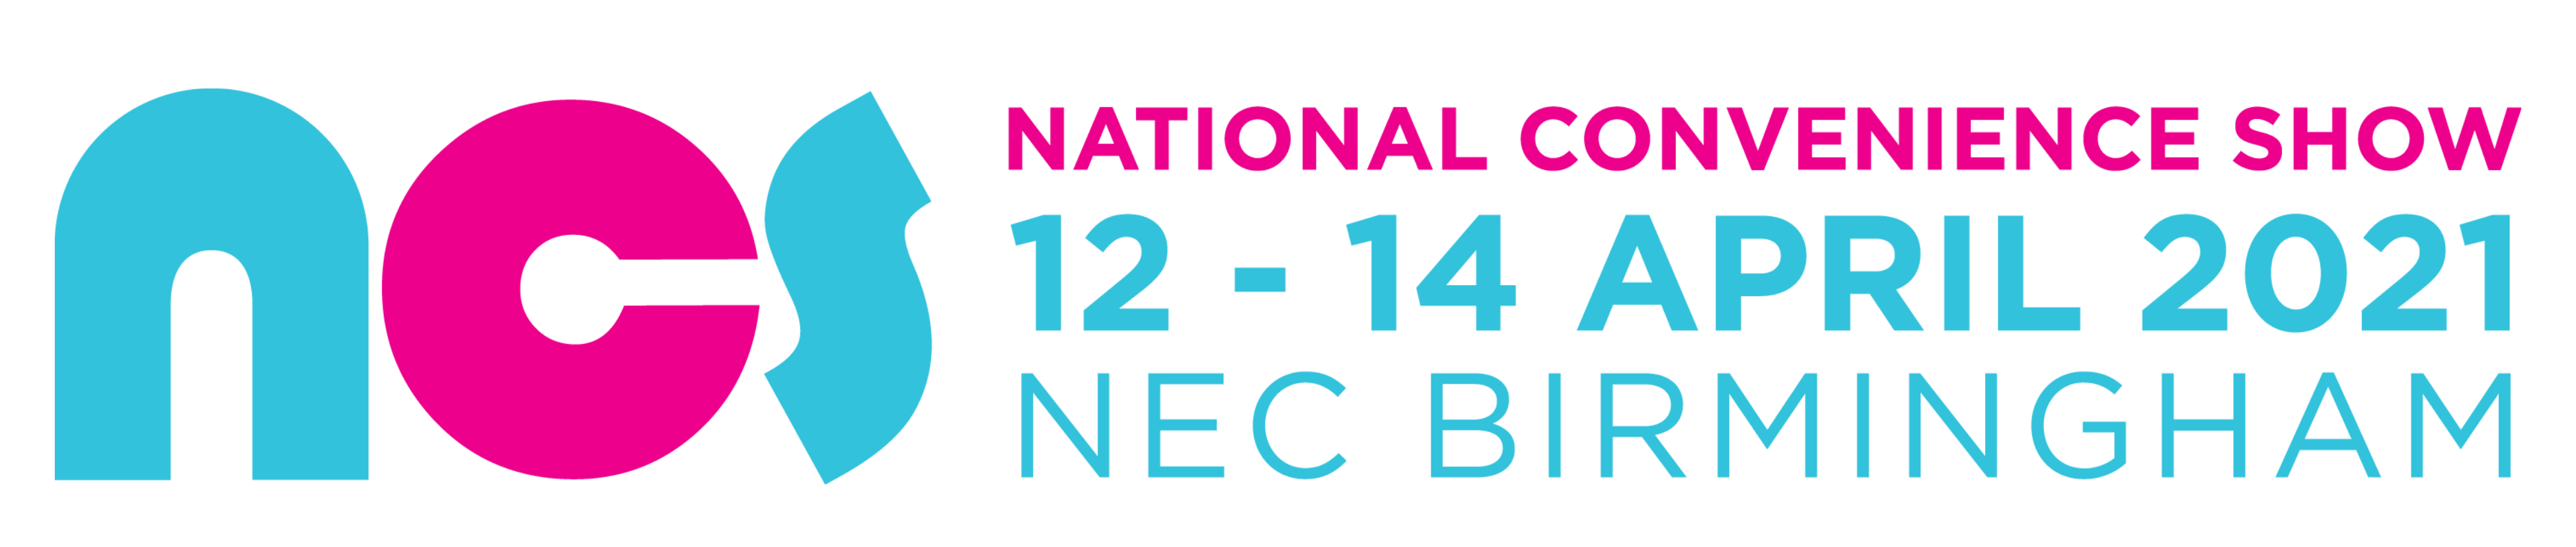 NCS 21 date no background